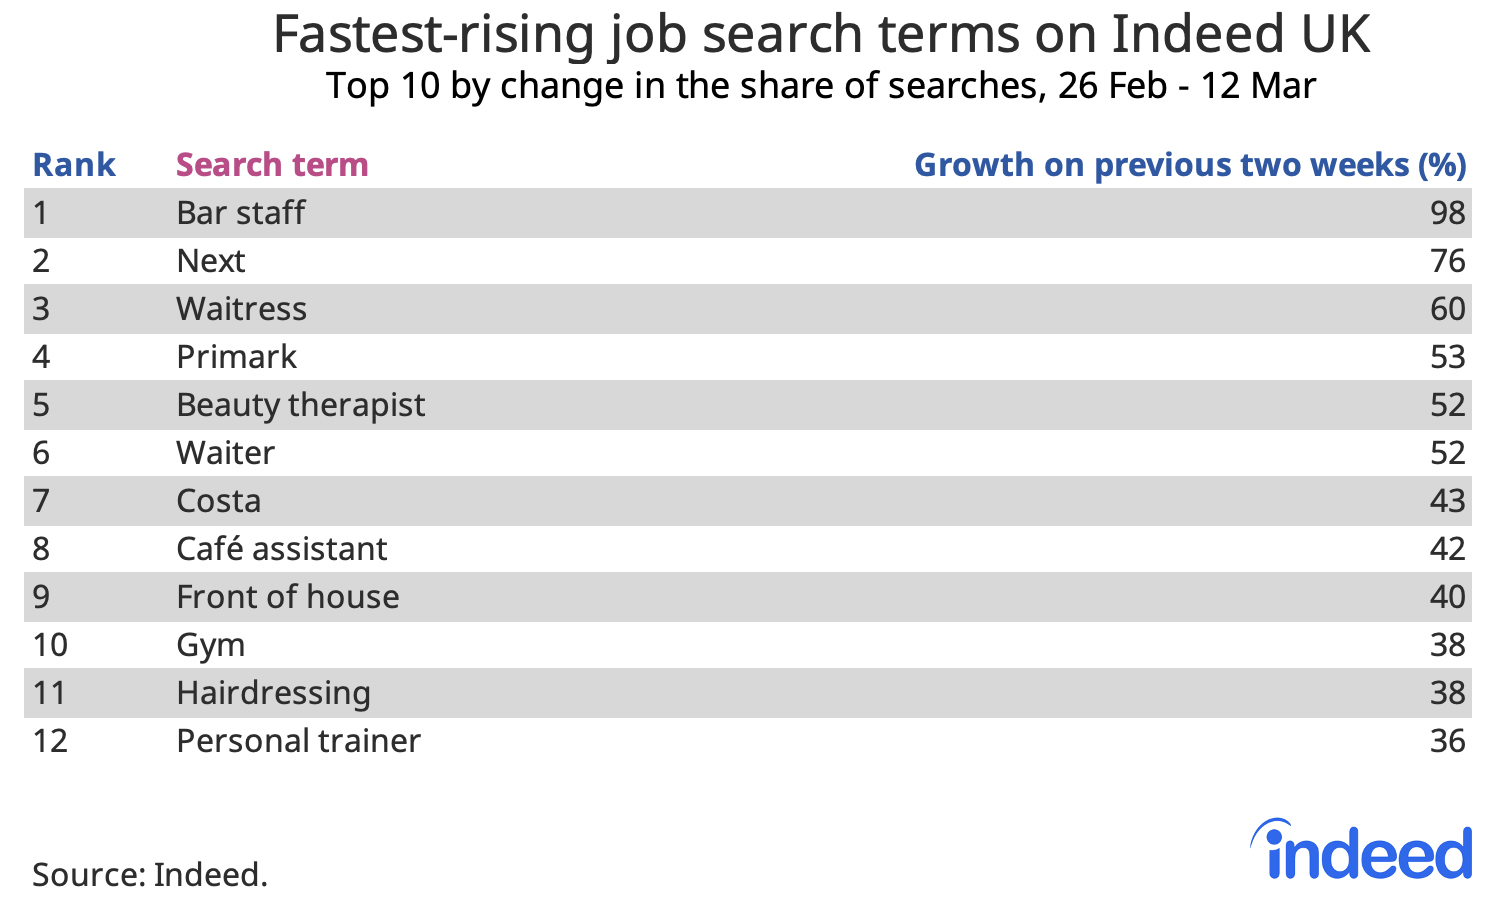 Table showing fastest-rising job search terms on Indeed UK